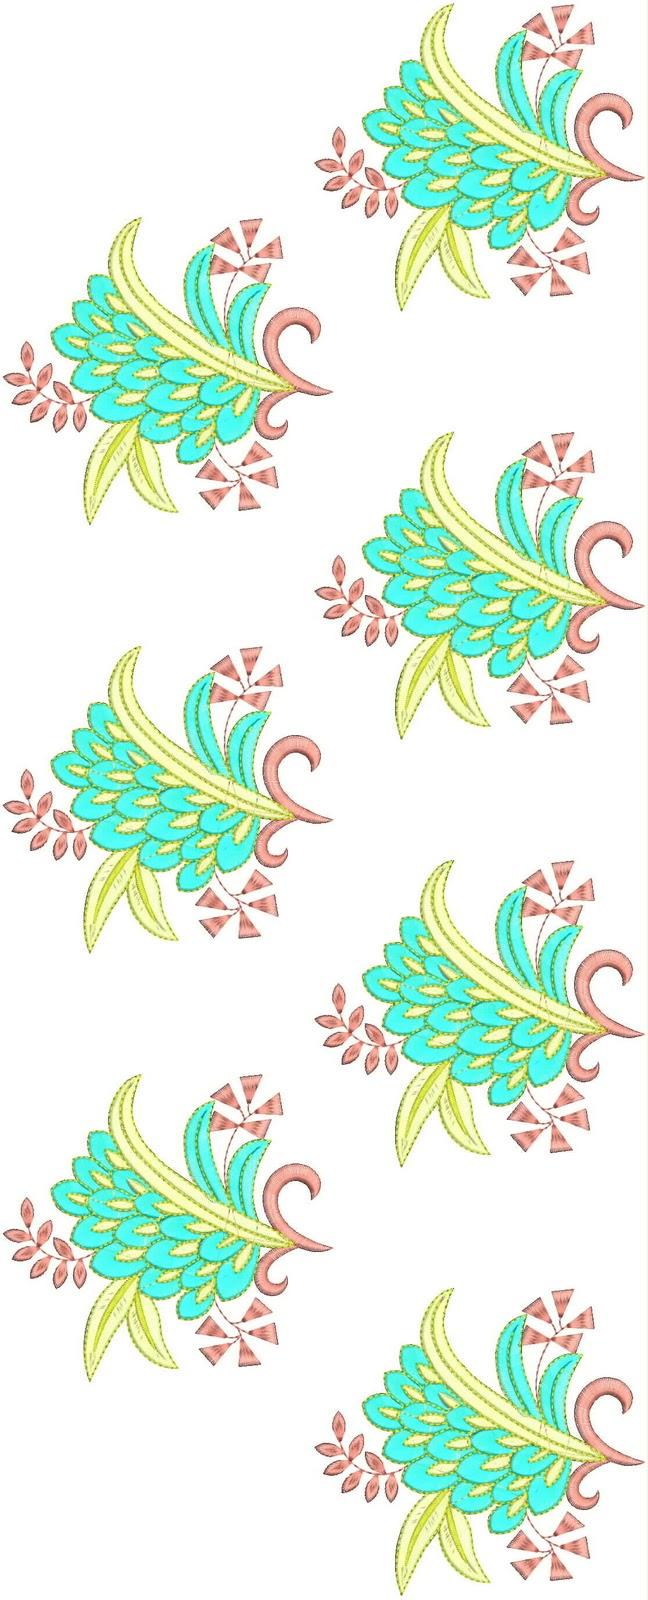 Embdesigntube Patches Allover Flat Embroidery Designs